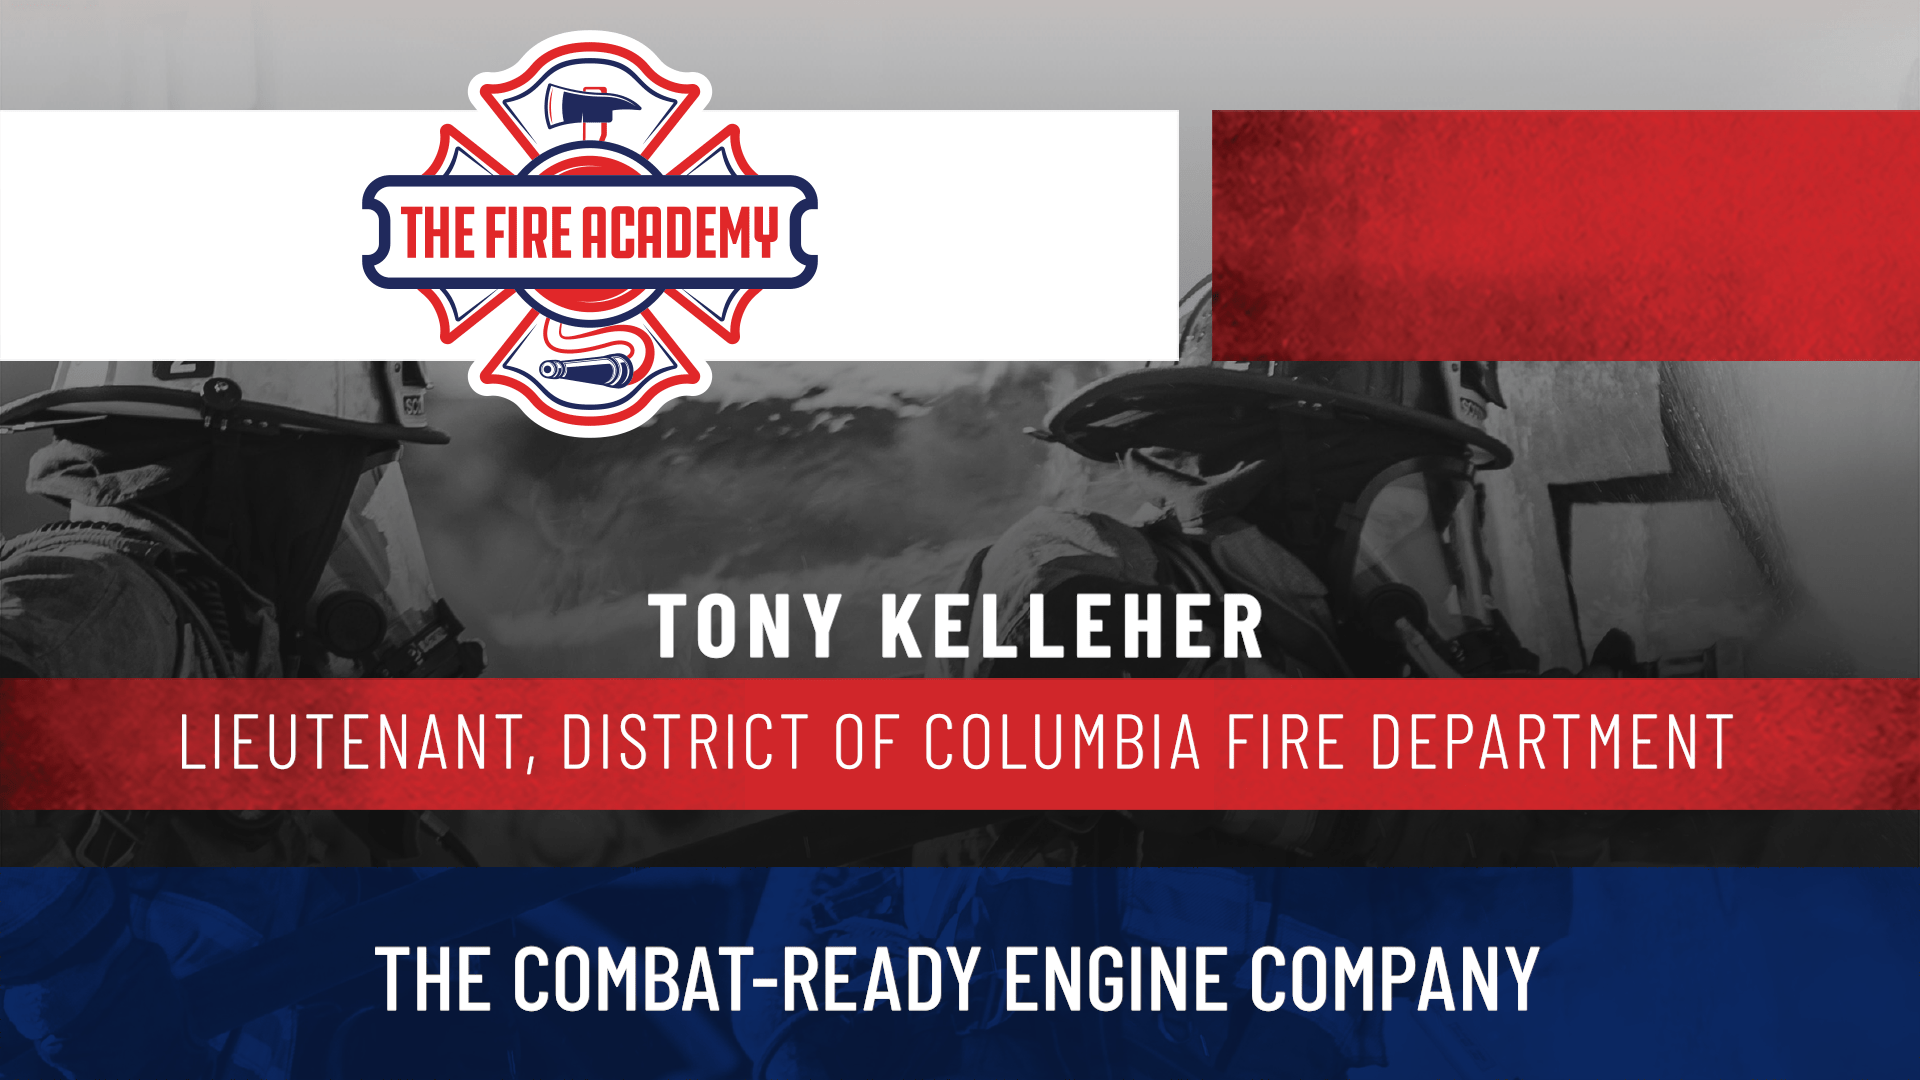 The Combat-Ready Engine Company